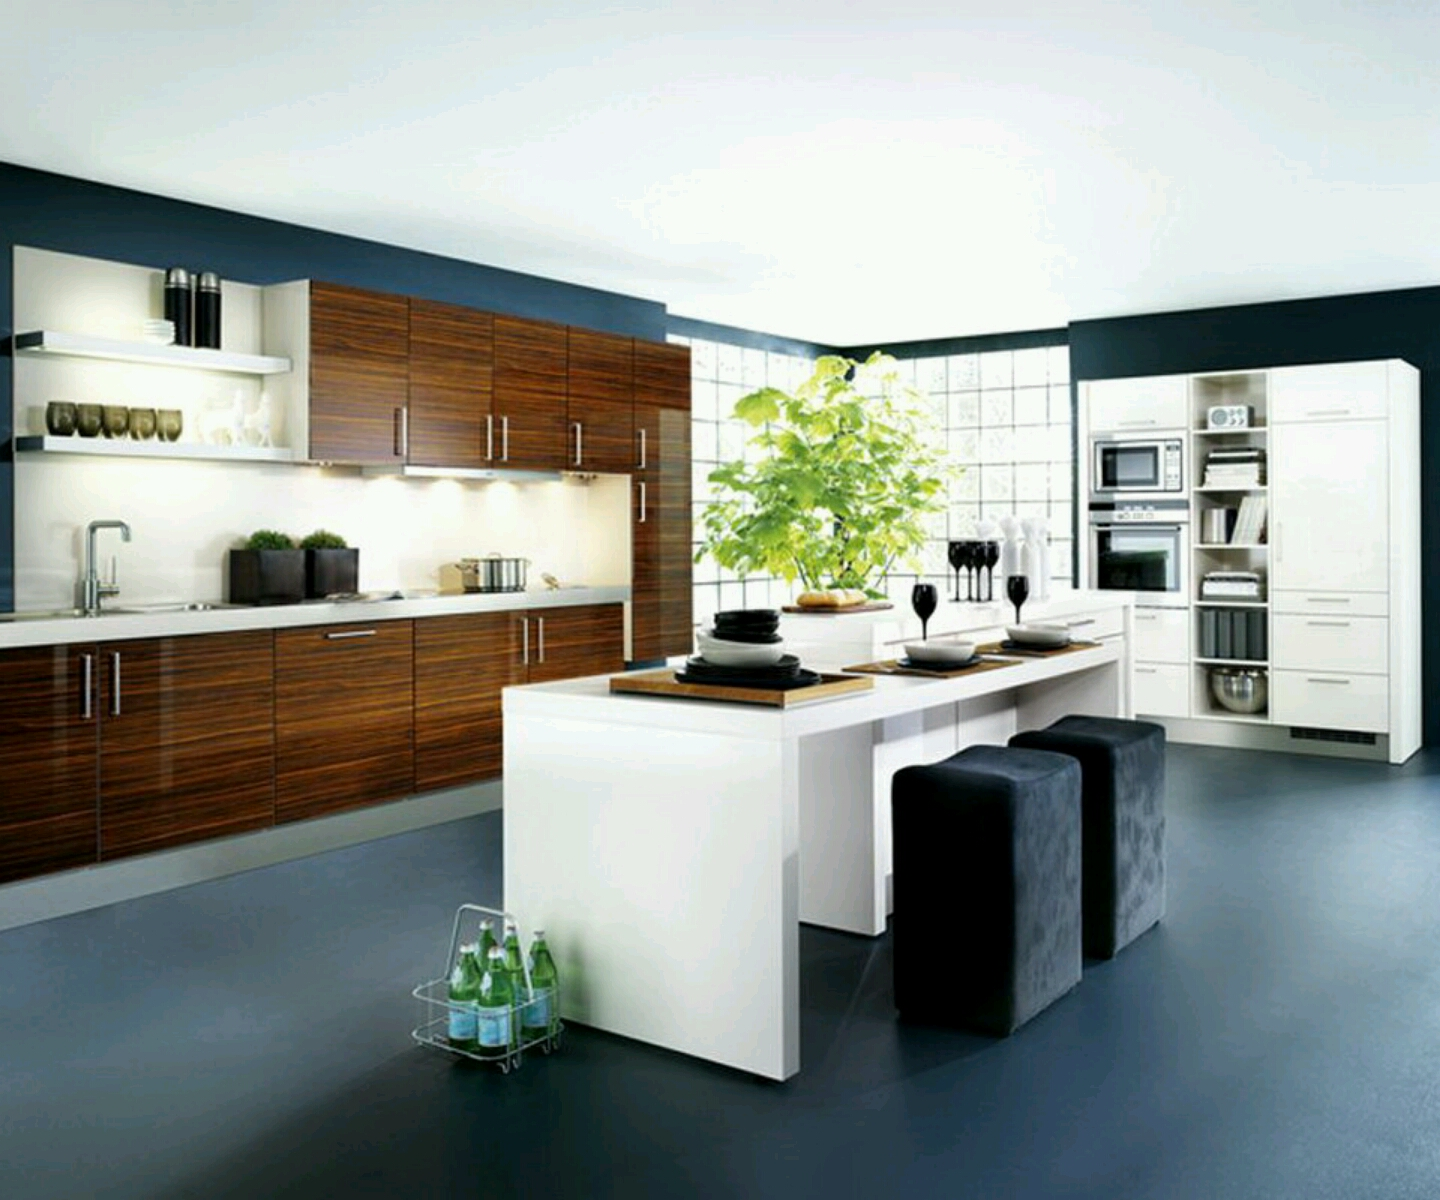 New home designs latest kitchen cabinets designs modern for Modern kitchen cabinets design ideas